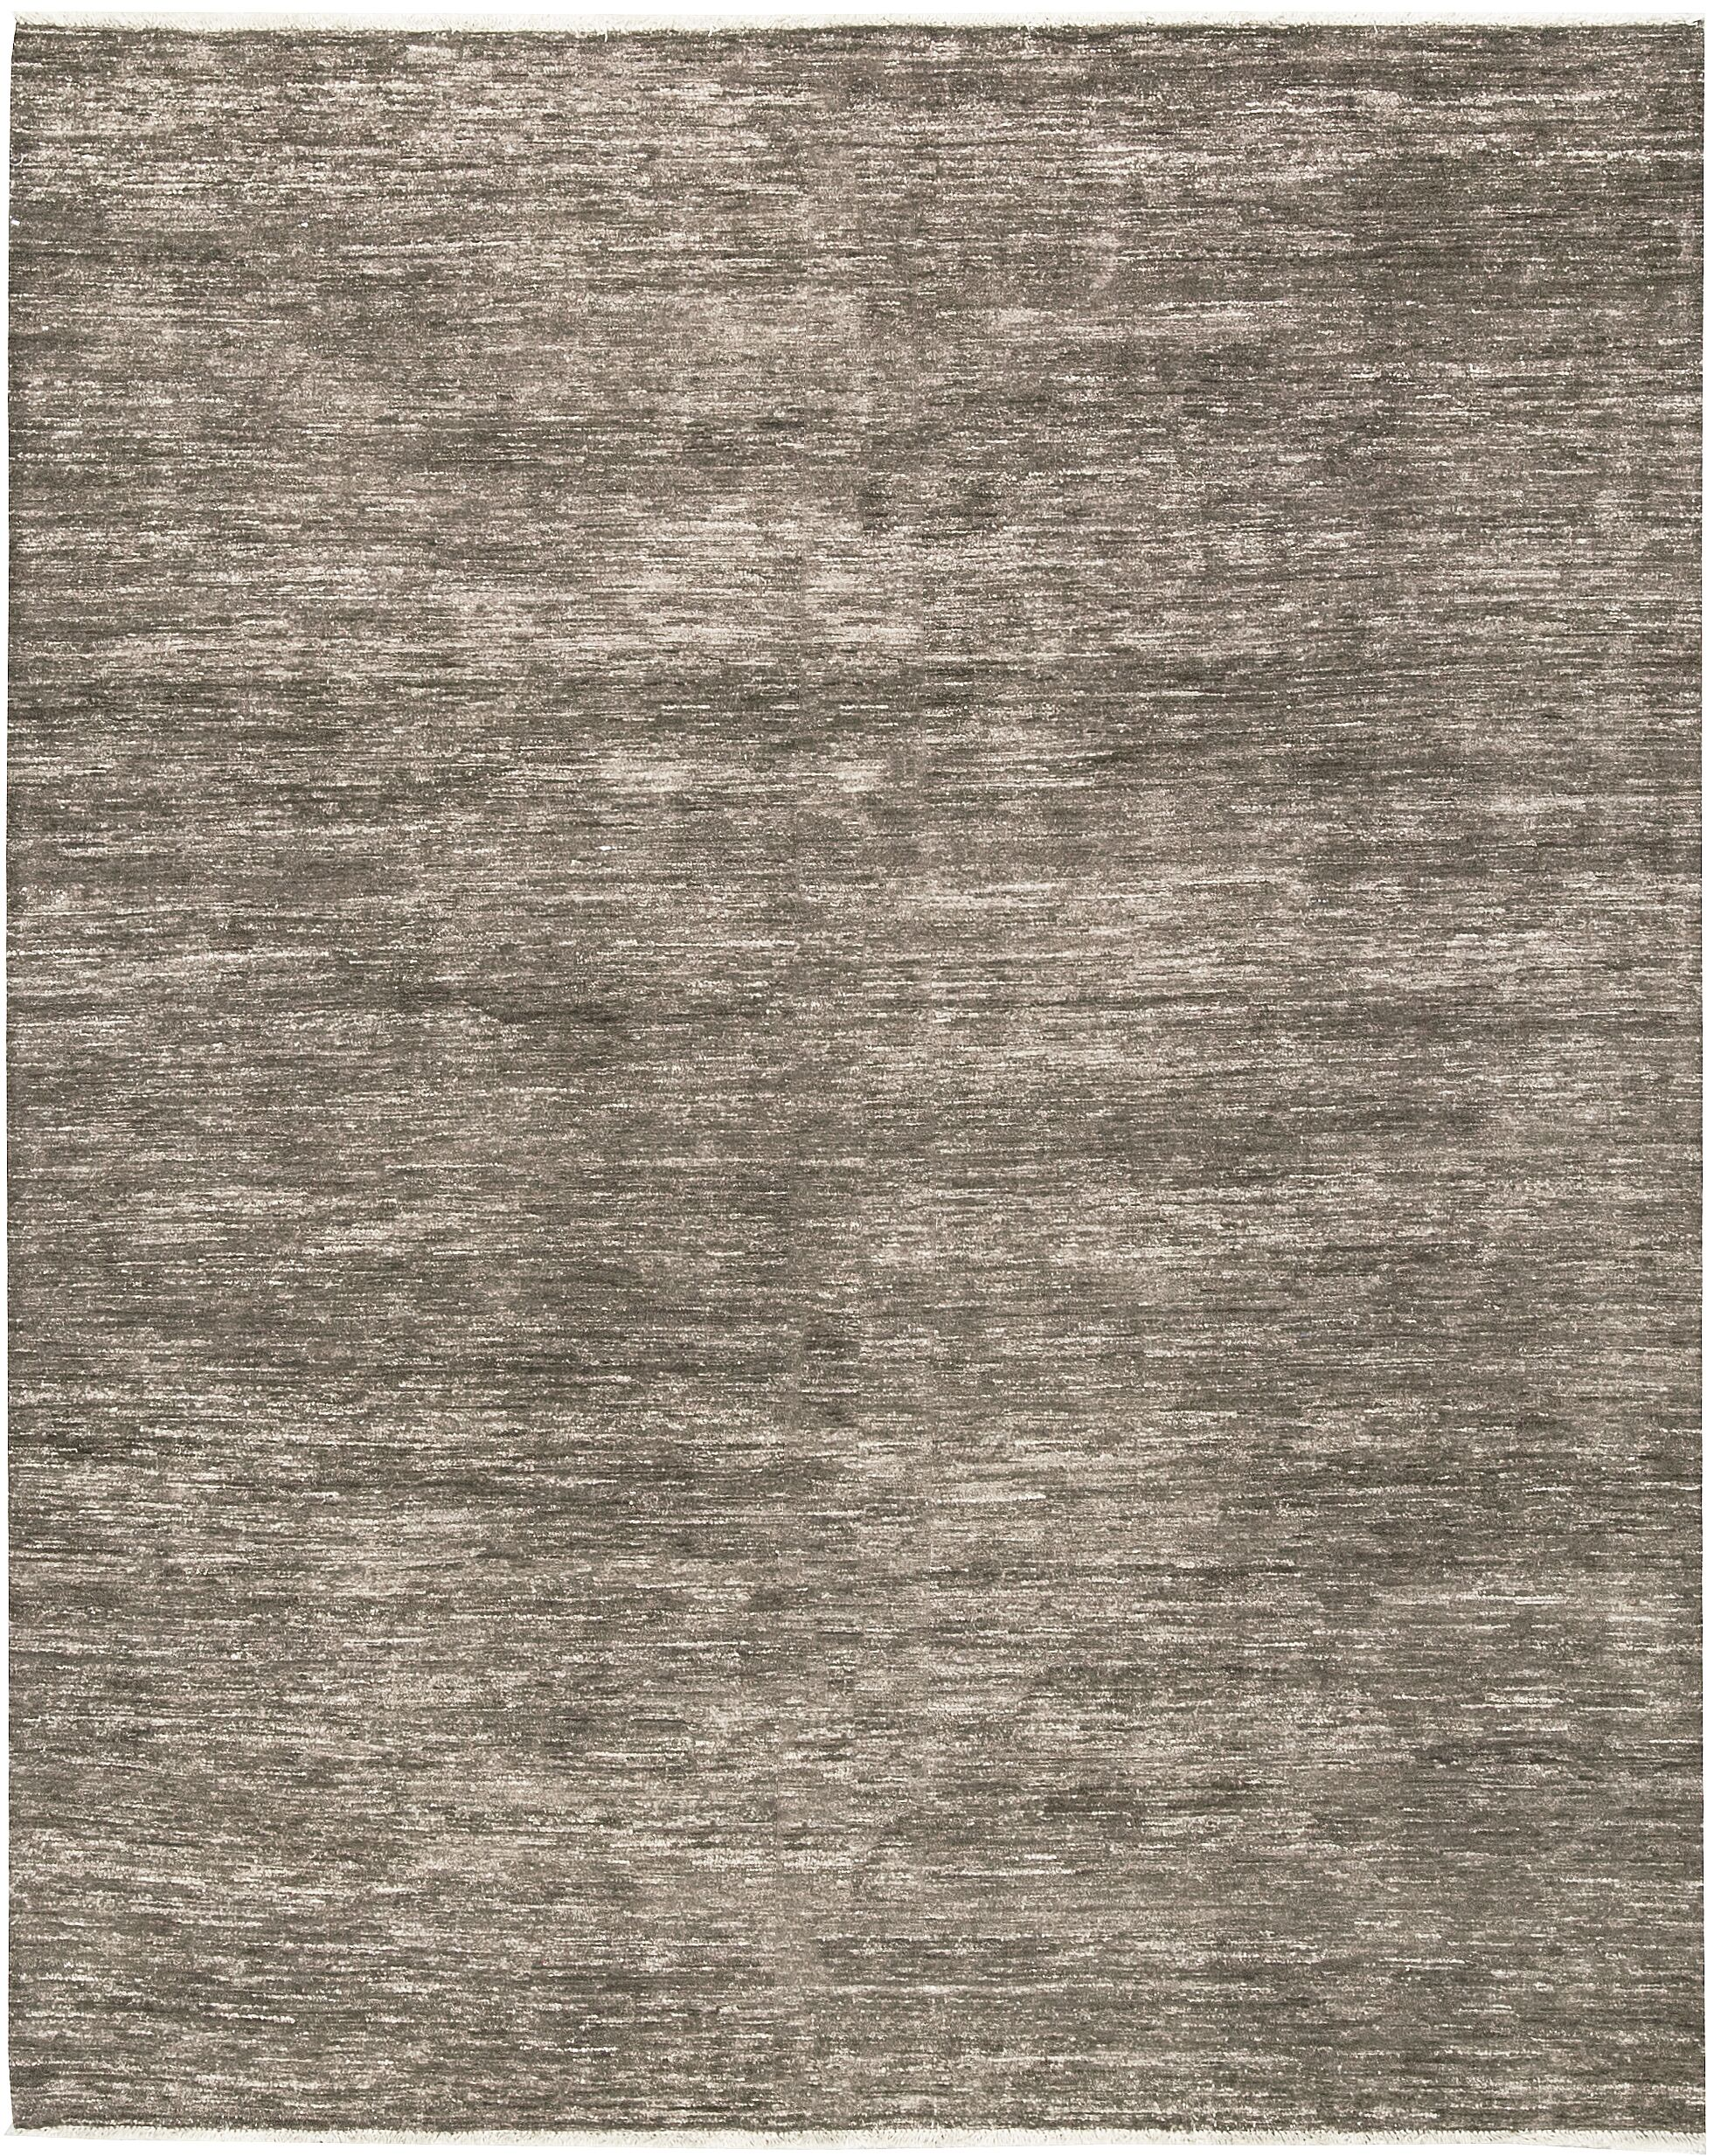 One-of-a-Kind Gabbeh Hand-Knotted Wool Brown/Ivory Area Rug